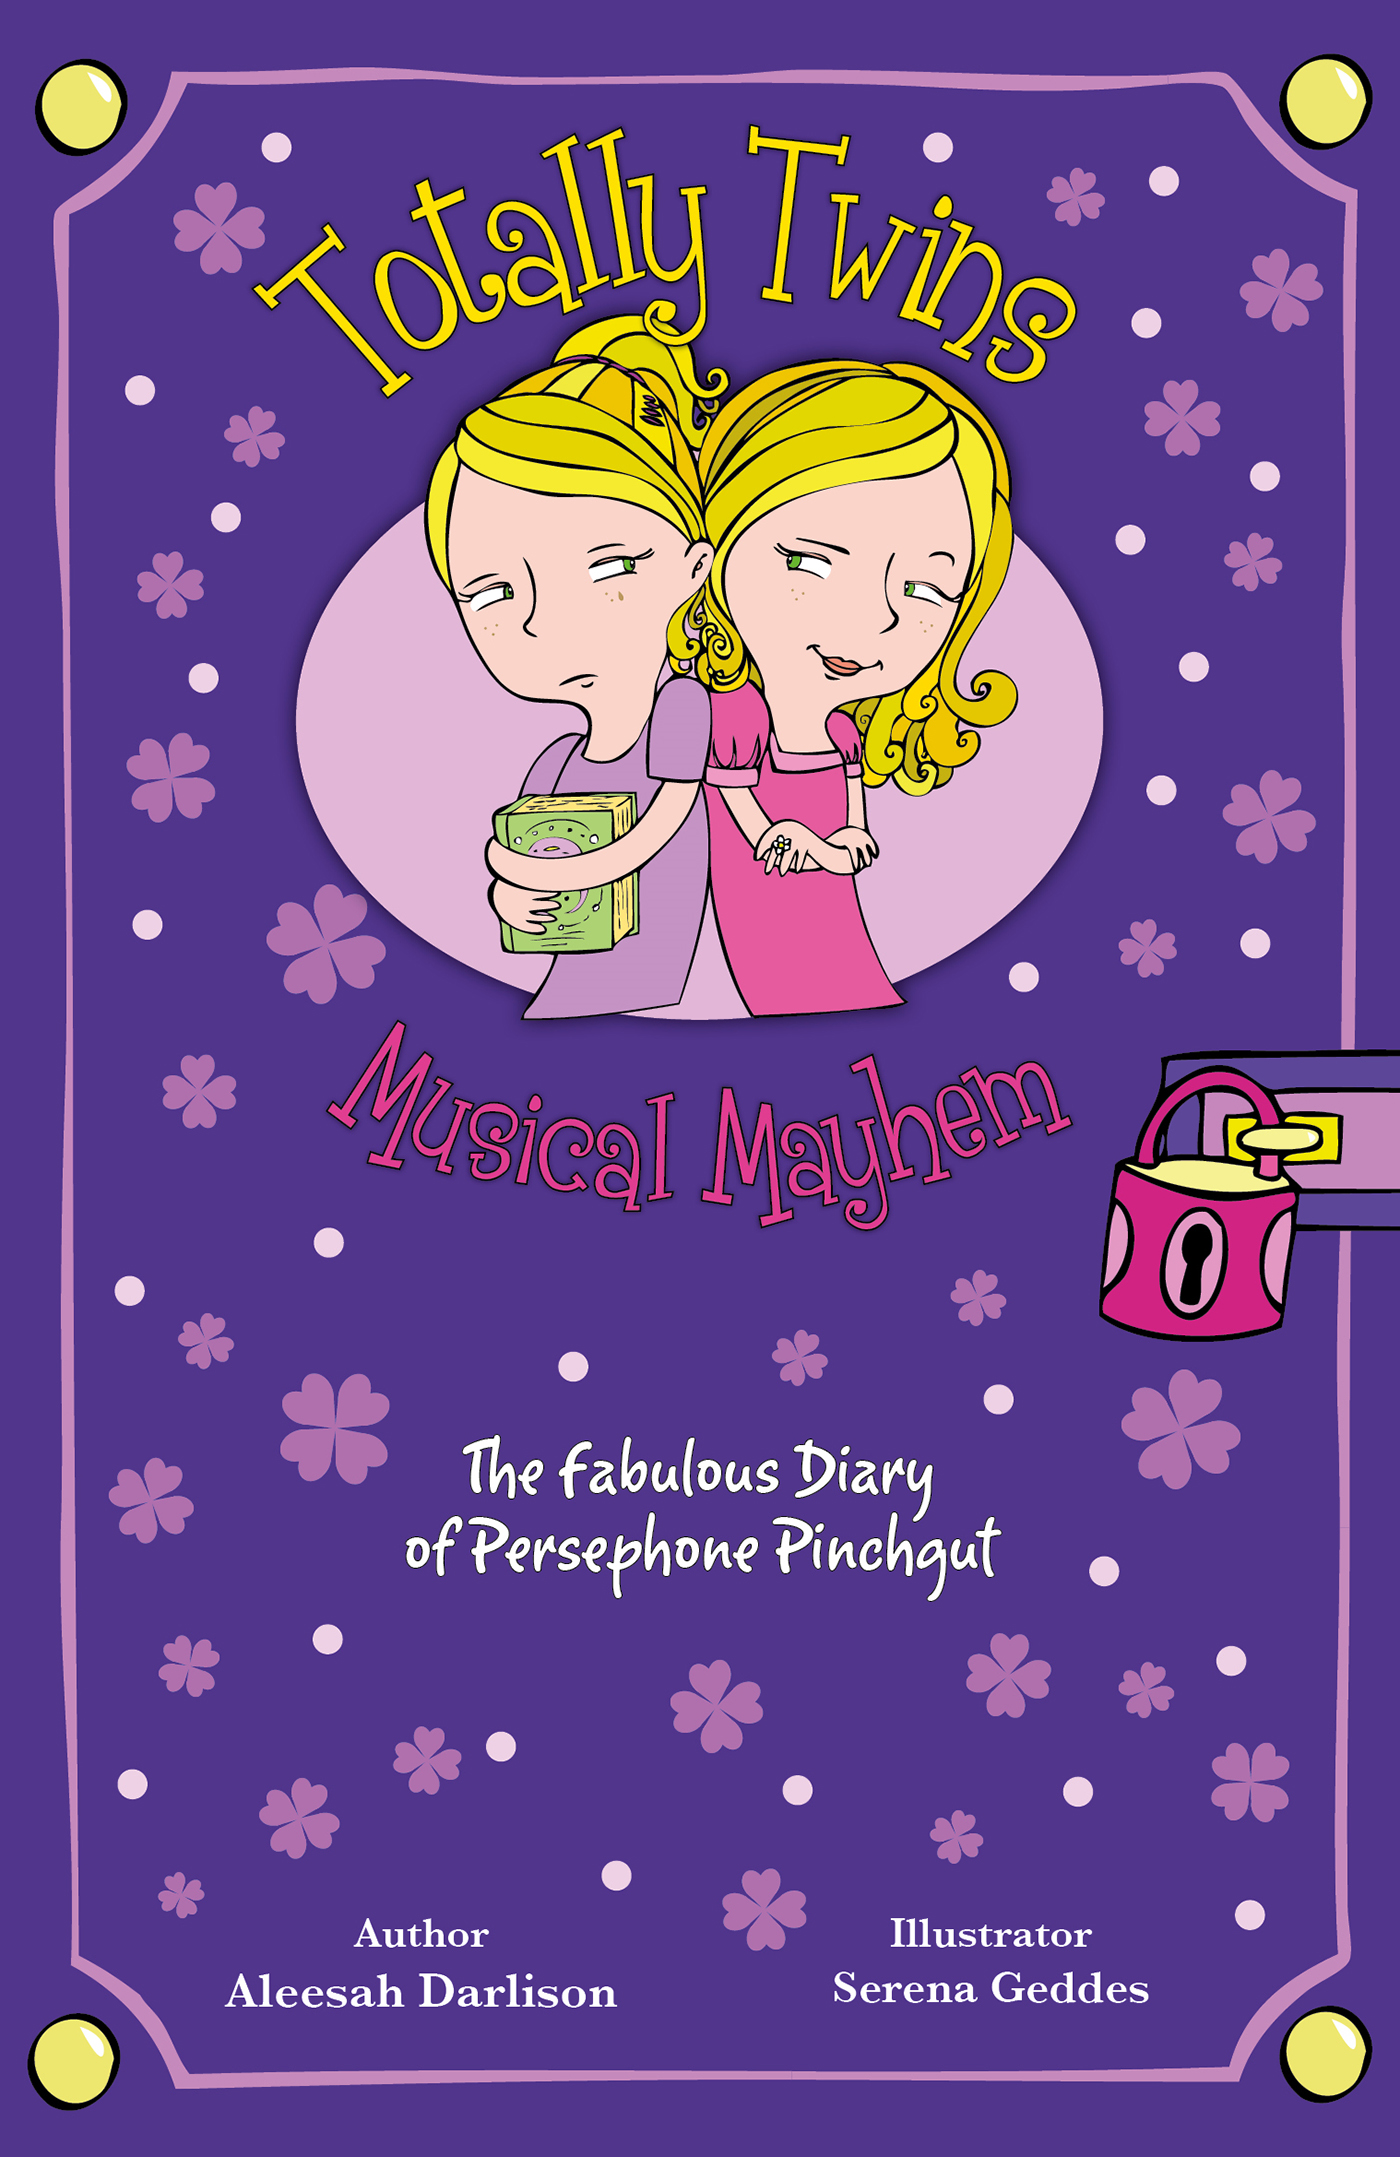 Musical Mayhem: Totally Twins Series